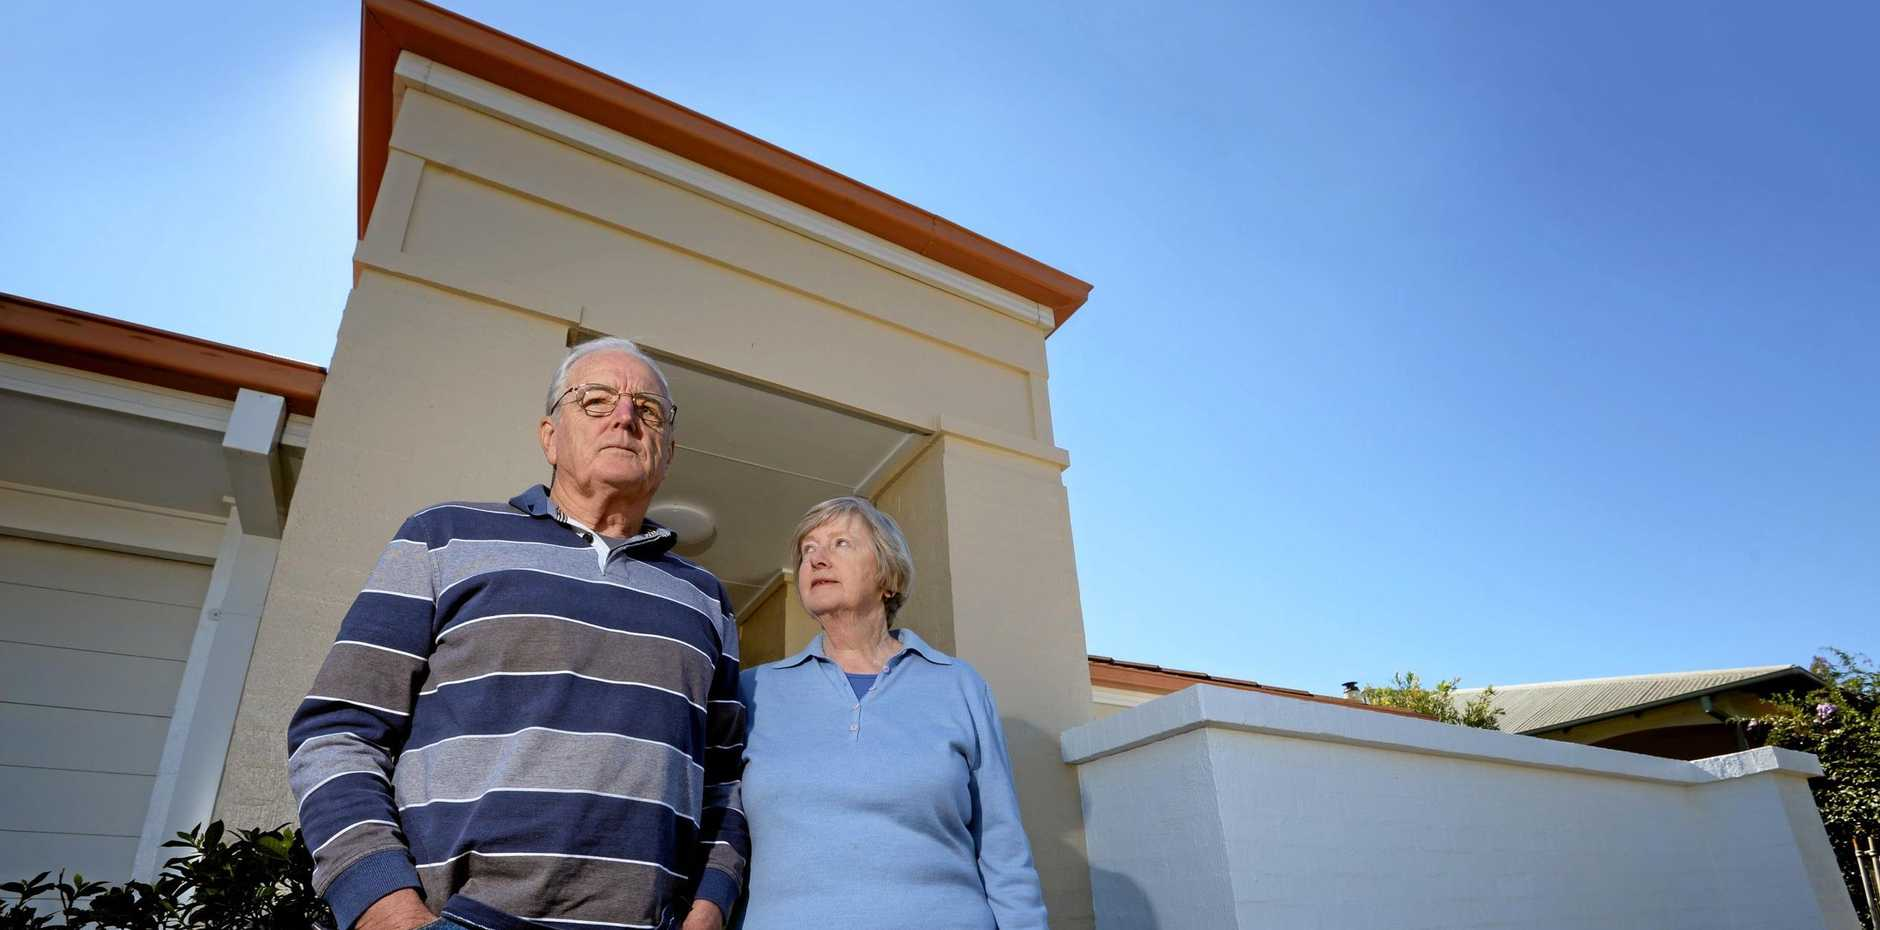 'UNFAIR': Castle Drive homeowners Chris and Robin Lowry copped abuse from protesters over the lobbing of a giant fig tree damaging their house but were more concerned by what was said to council staff: 'Whether you agree or not, they're just carrying out their job'.